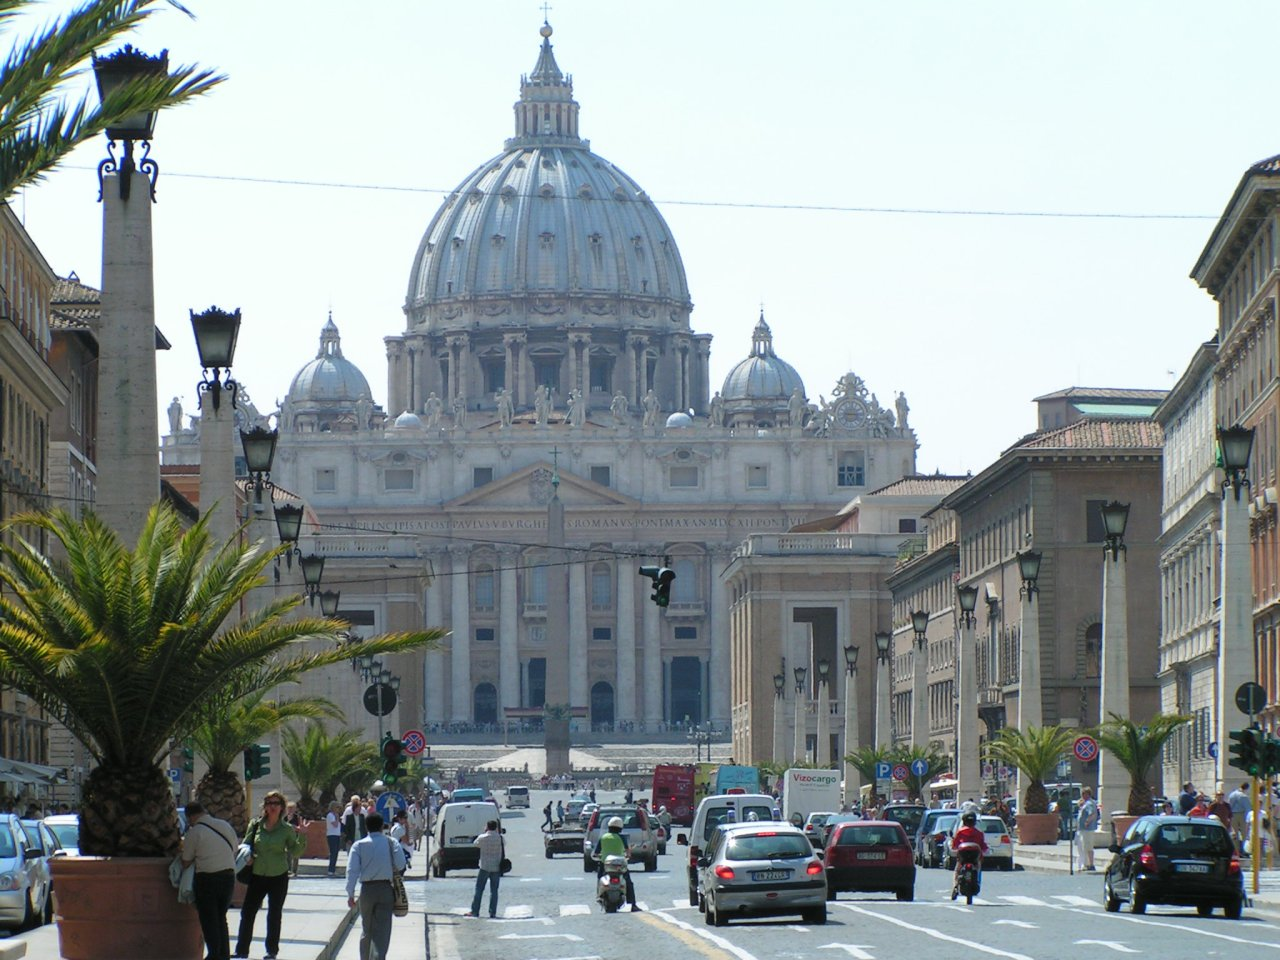 Rome, Italy, Most Visited Cities in the World